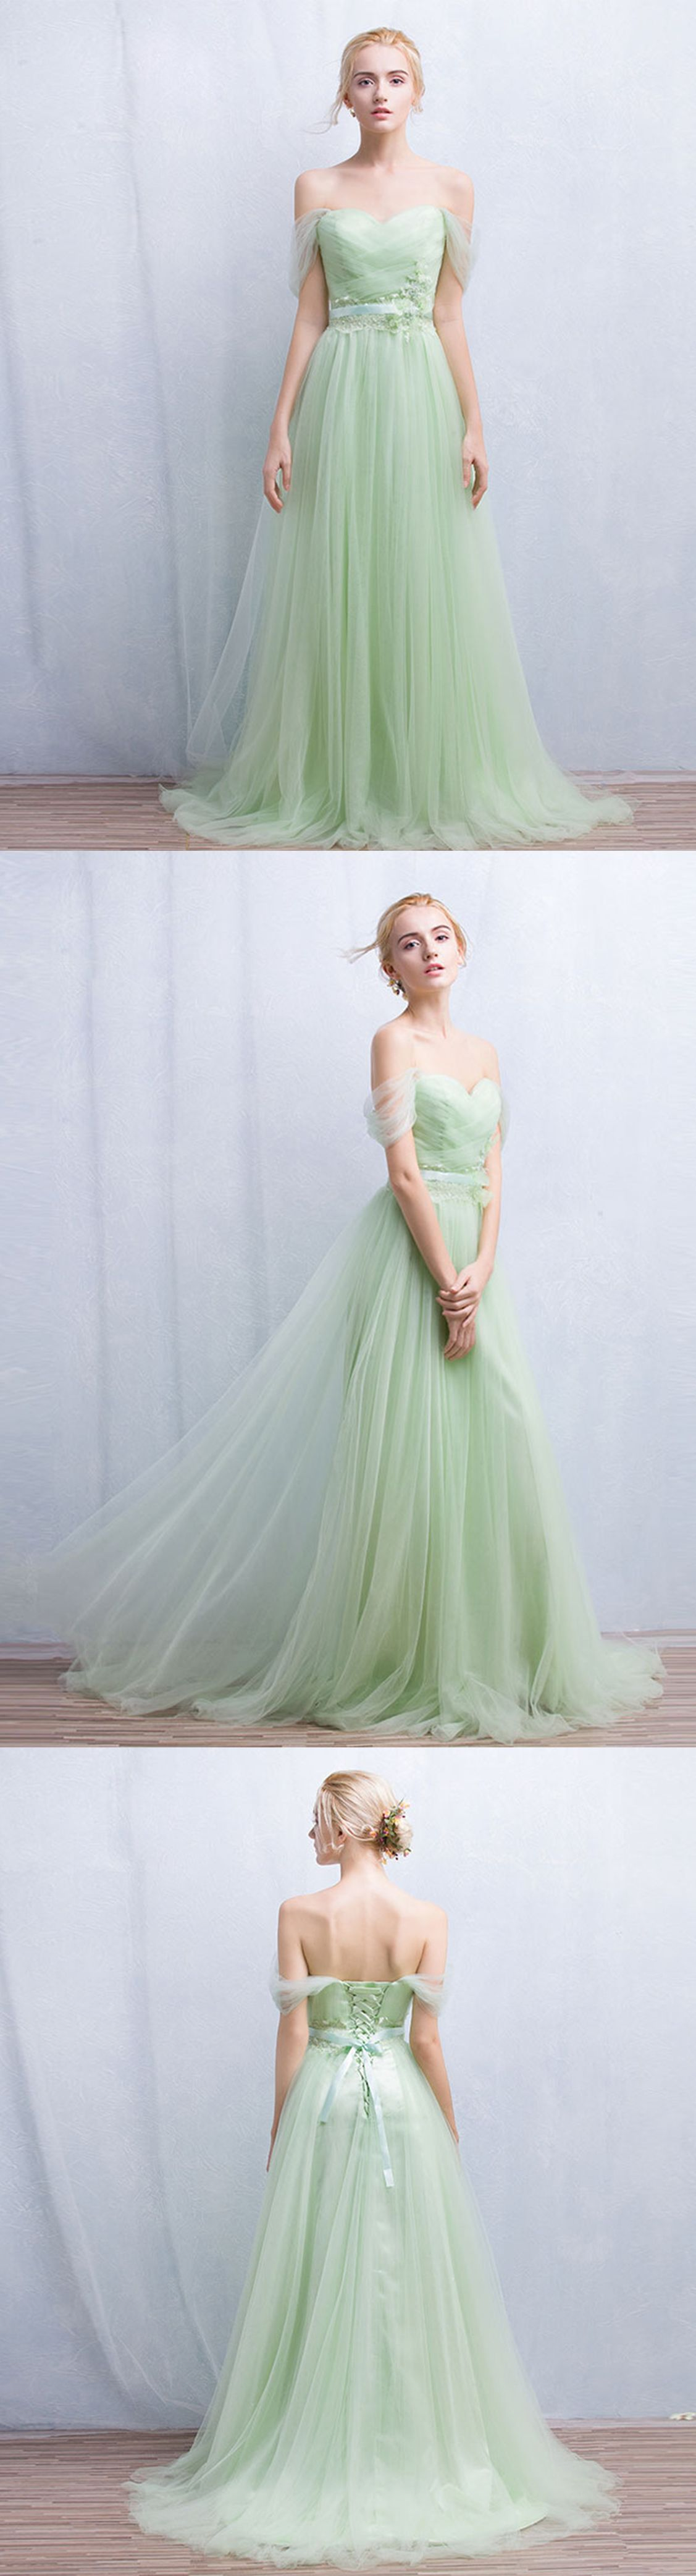 Off shoulder backless evening ball gown bridesmaid dress dresses